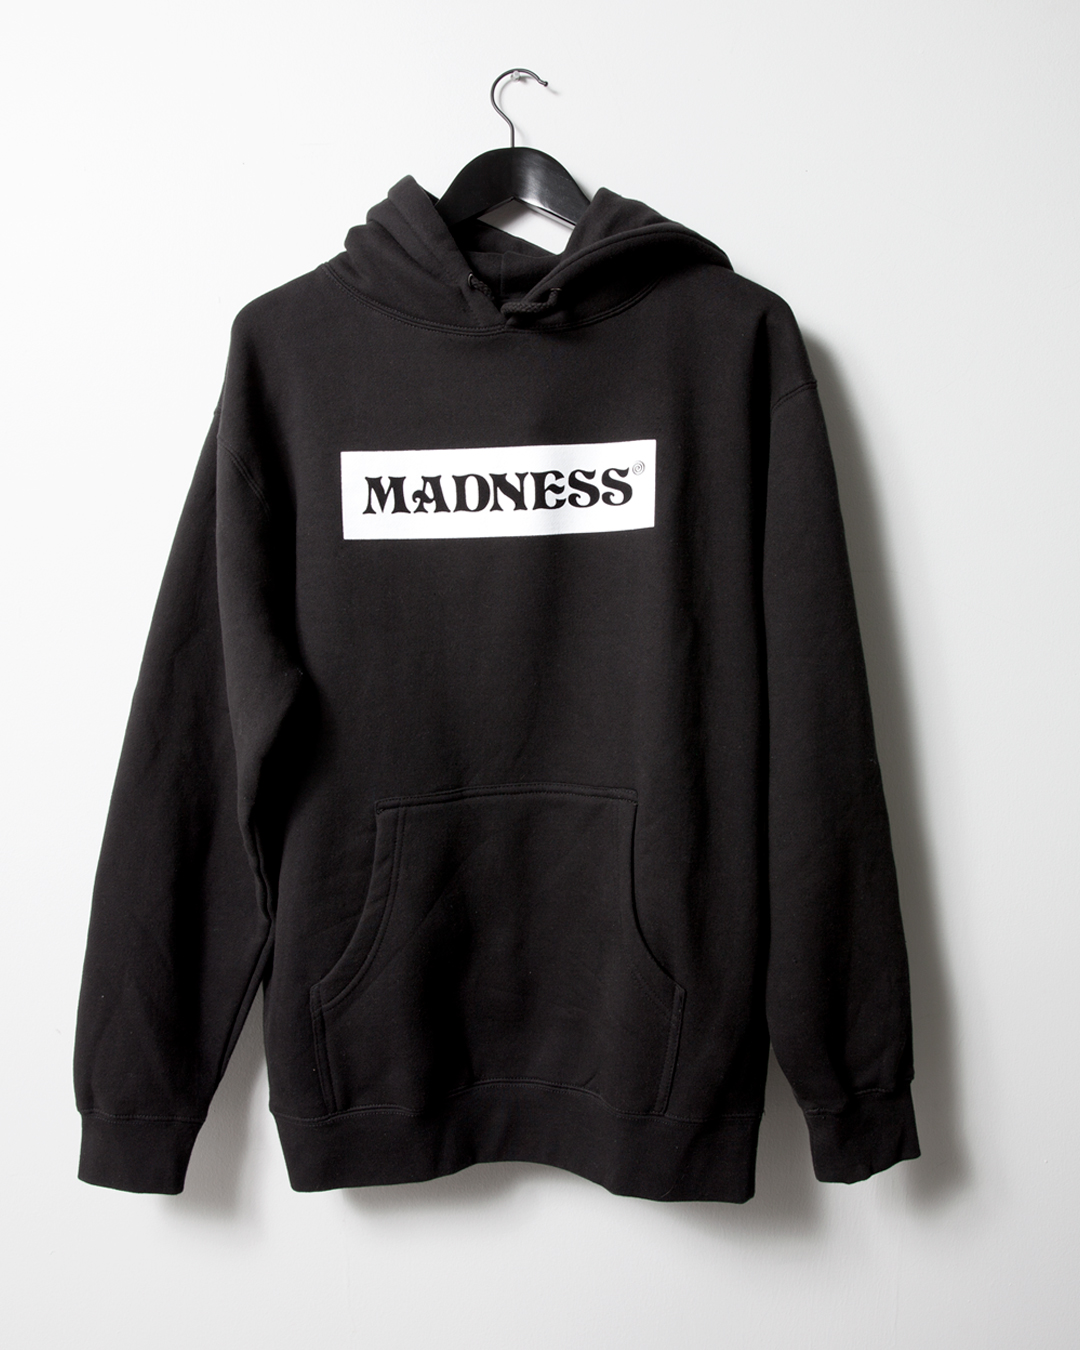 madness-skateboards-BAR-BLACK-PULLOVER-FRONT-1350.jpg